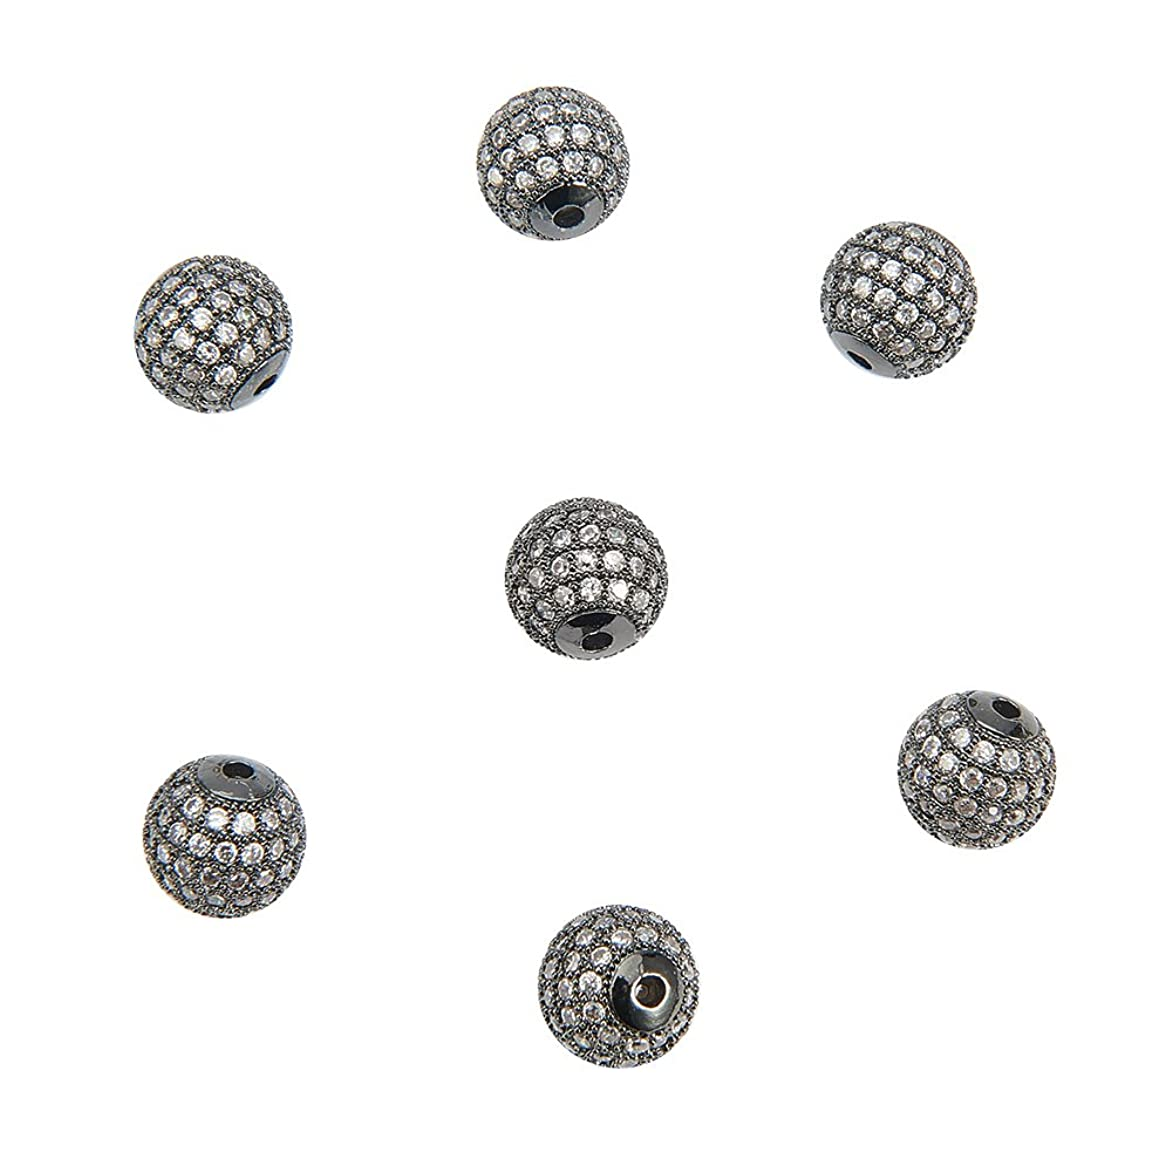 NBEADS 10pcs 10mm Brass Clear Gemstones Cubic Zirconia CZ Stones Pave Micro Setting Disco Ball Spacer Beads, Round Bracelet Connector Charms Beads for Jewelry Making hmg495859989182